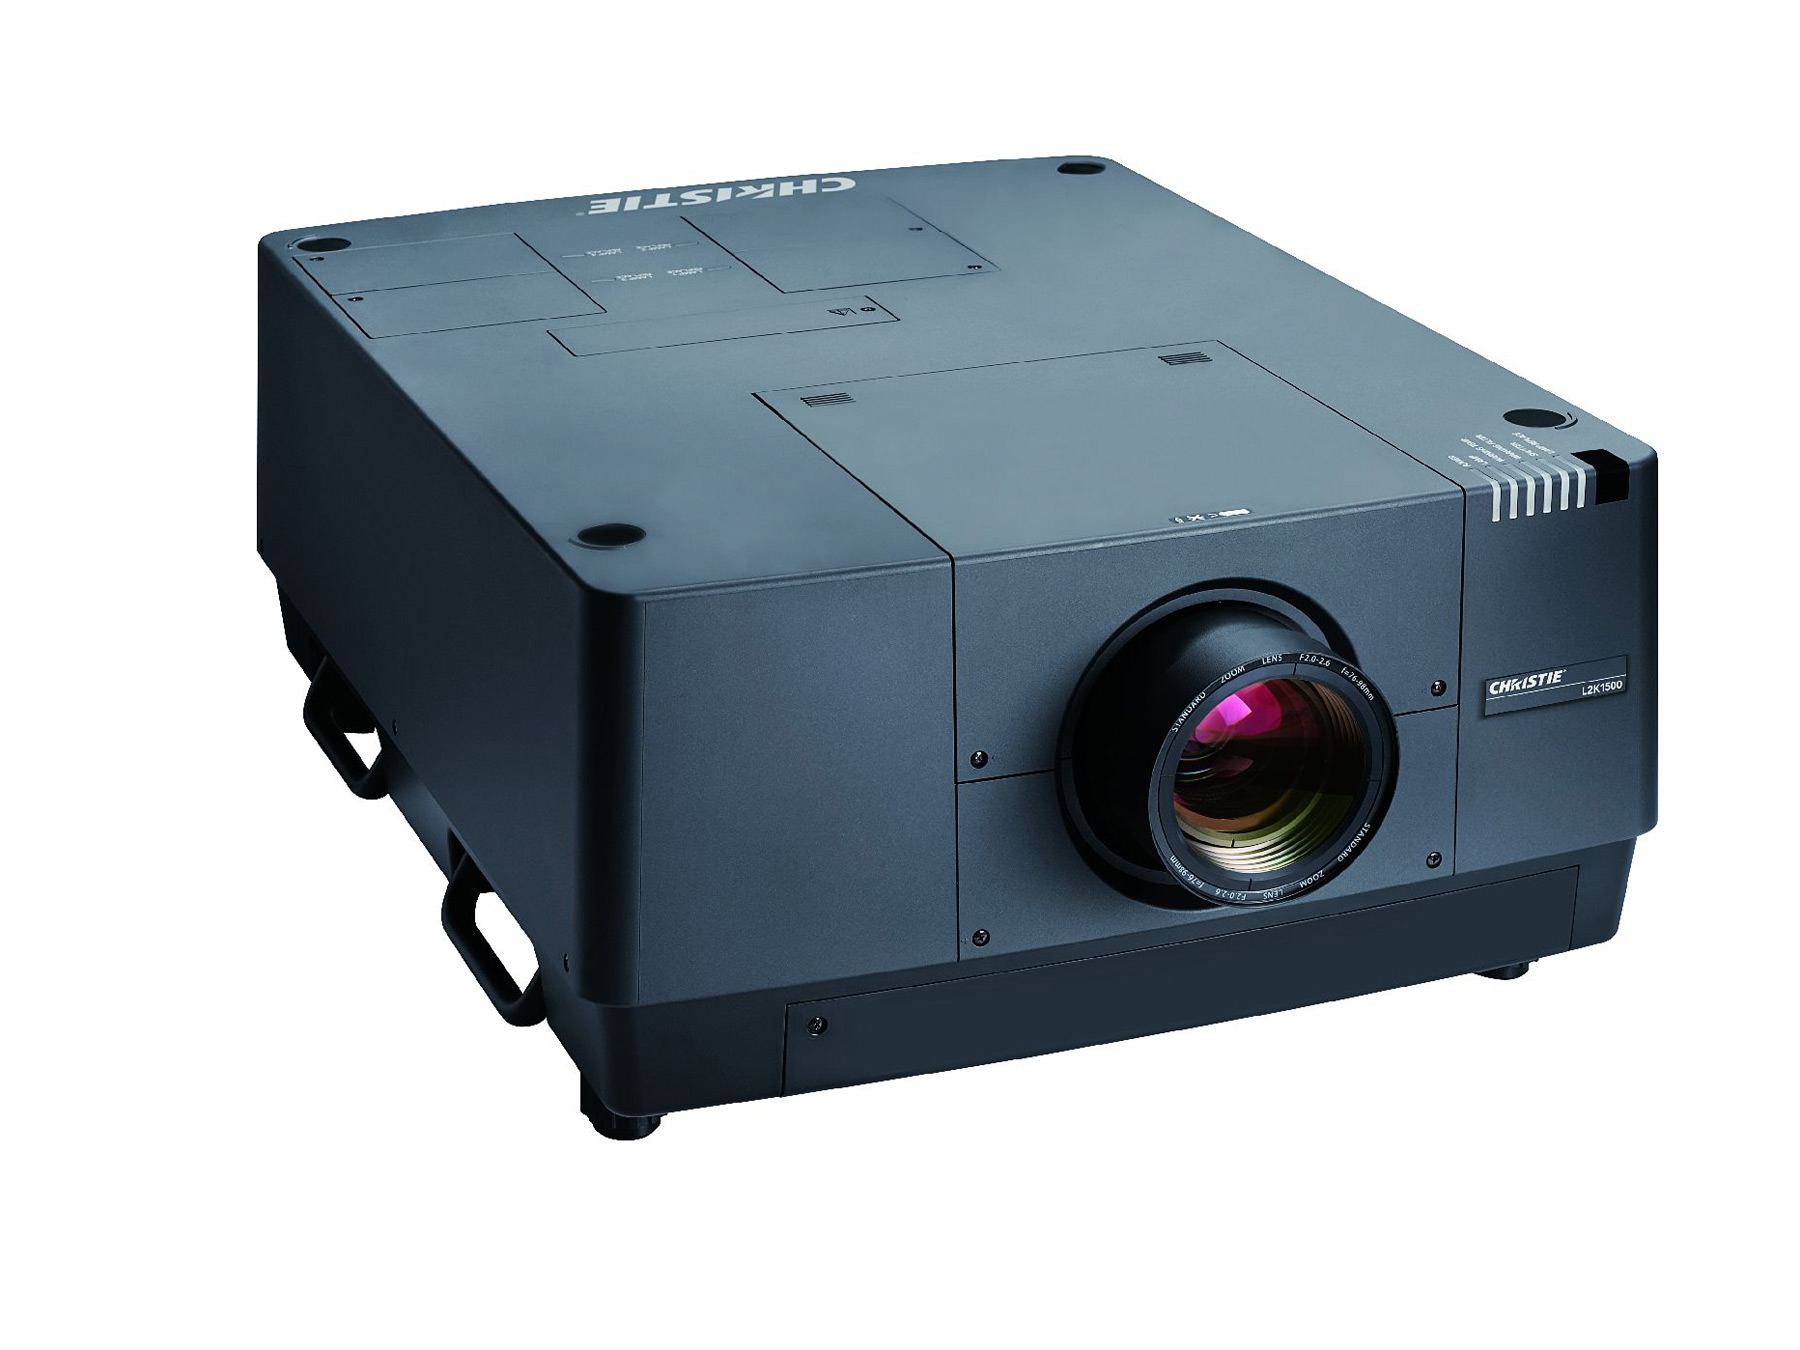 /globalassets/.catalog/products/images/christie-l2k1500/gallery/christie-l2k-1500-3-lcd-digital-projector-image-12.jpg